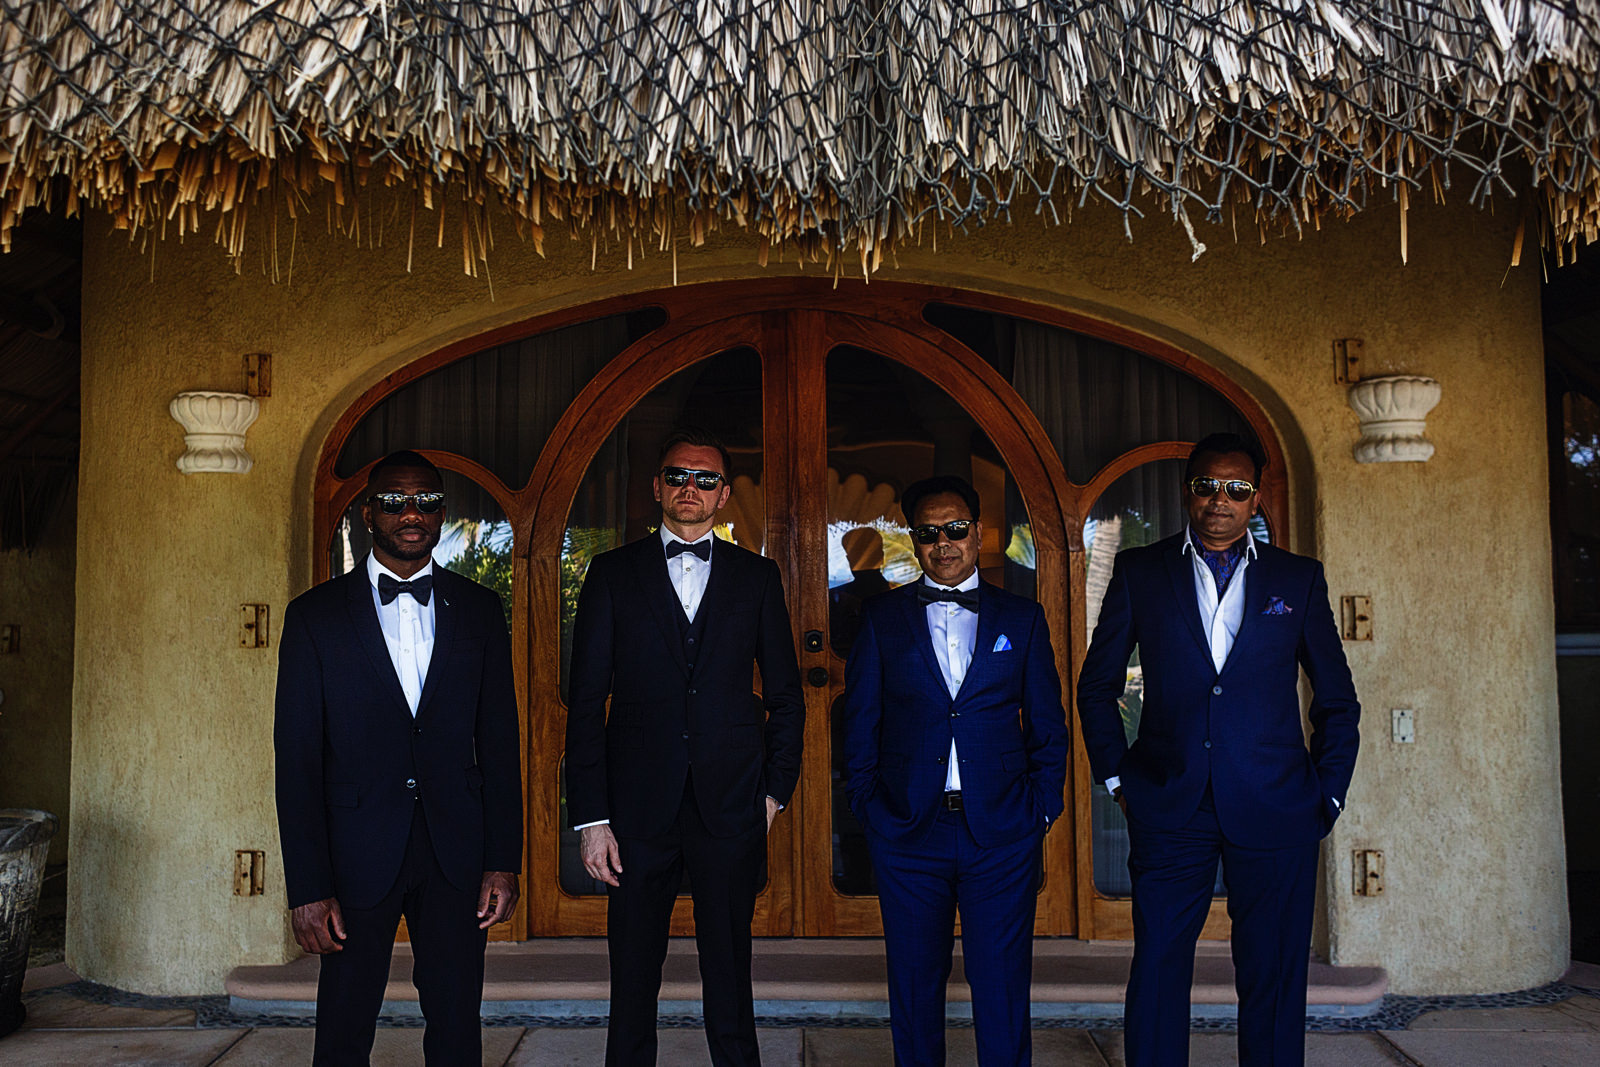 Groom and groomsmen standing outside the main room's door at Villa Las Rocas in Cabo San Lucas, Mexico.